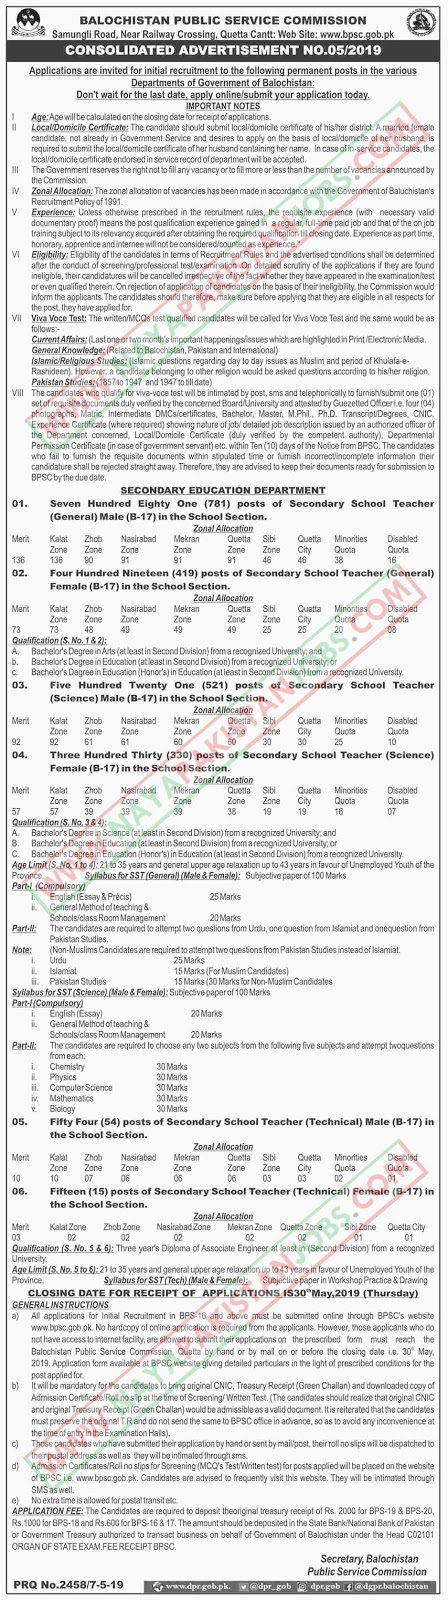 BPSC Educators Jobs 2019, bpsc sst jobs , Educators SST Jobs 2019 in Secondary Education Department via BPSC